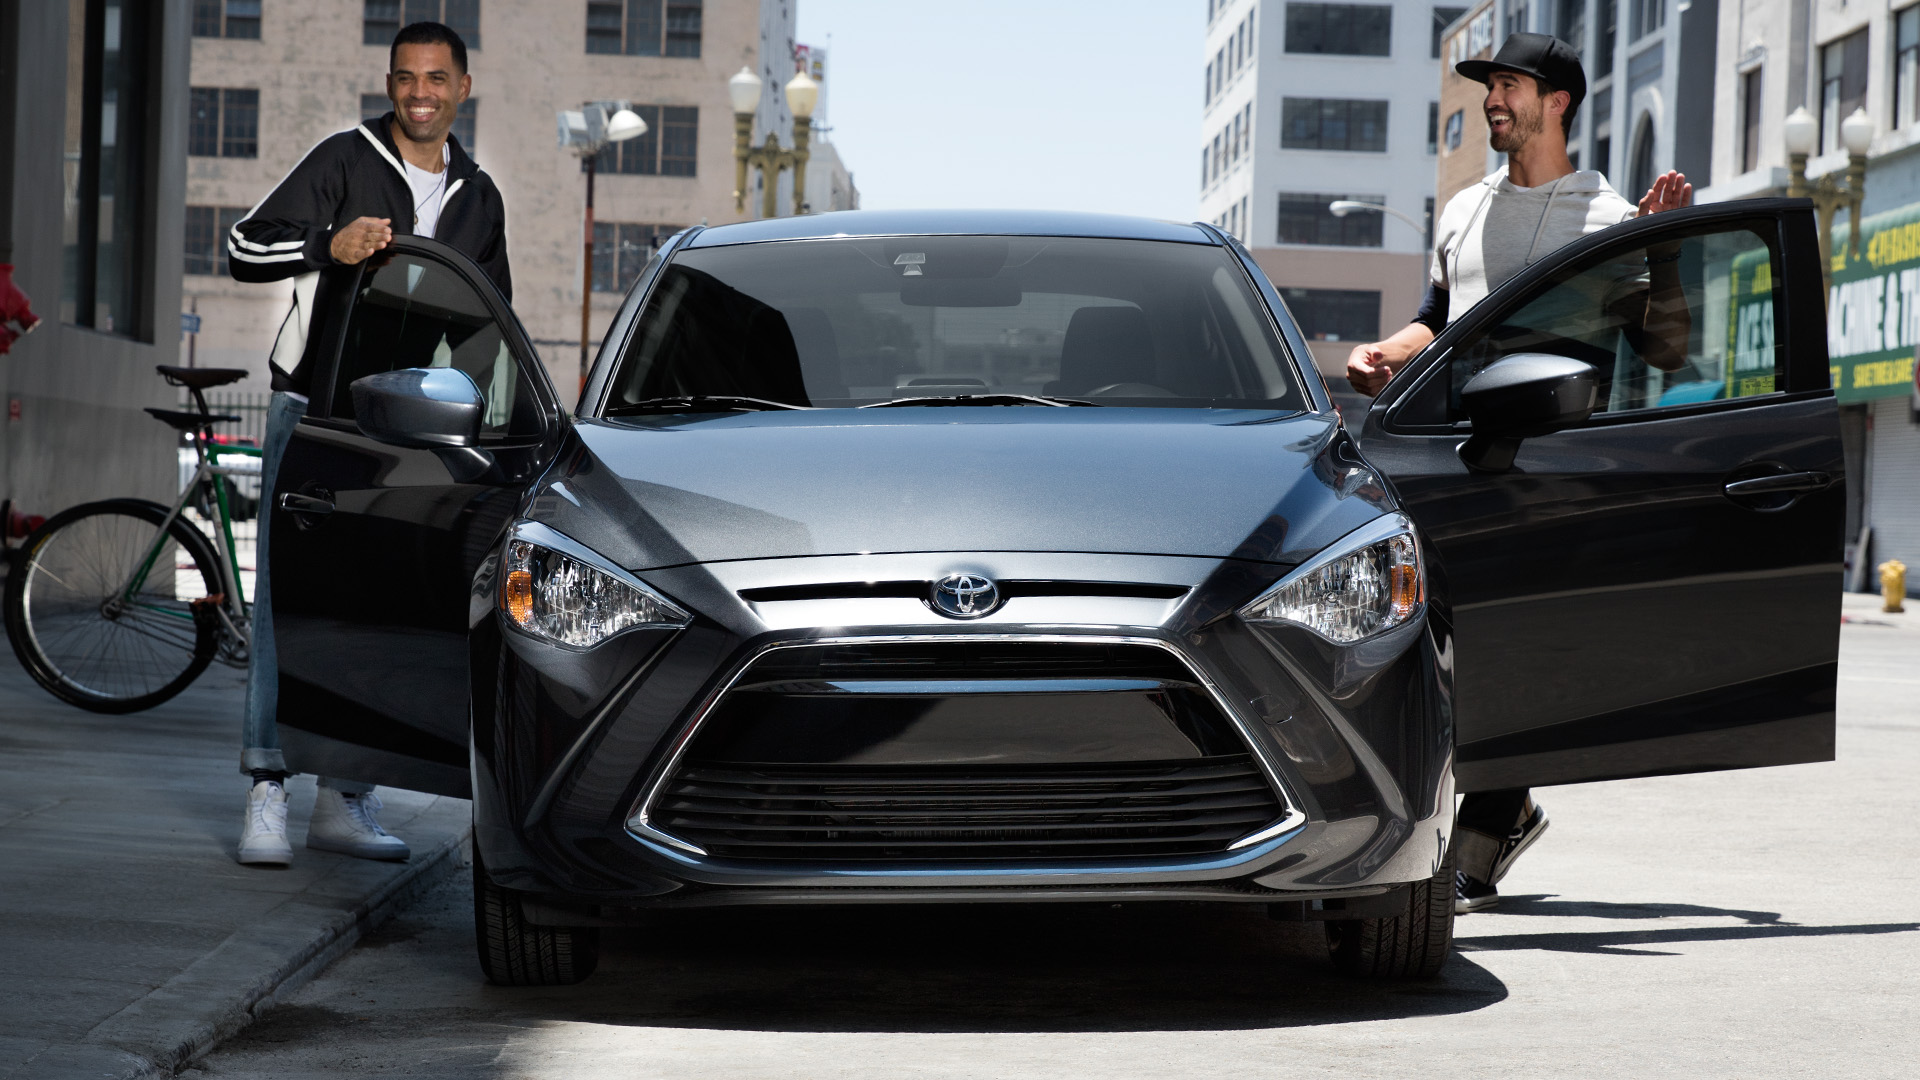 2017 toyota yaris ia overview the news wheel. Black Bedroom Furniture Sets. Home Design Ideas